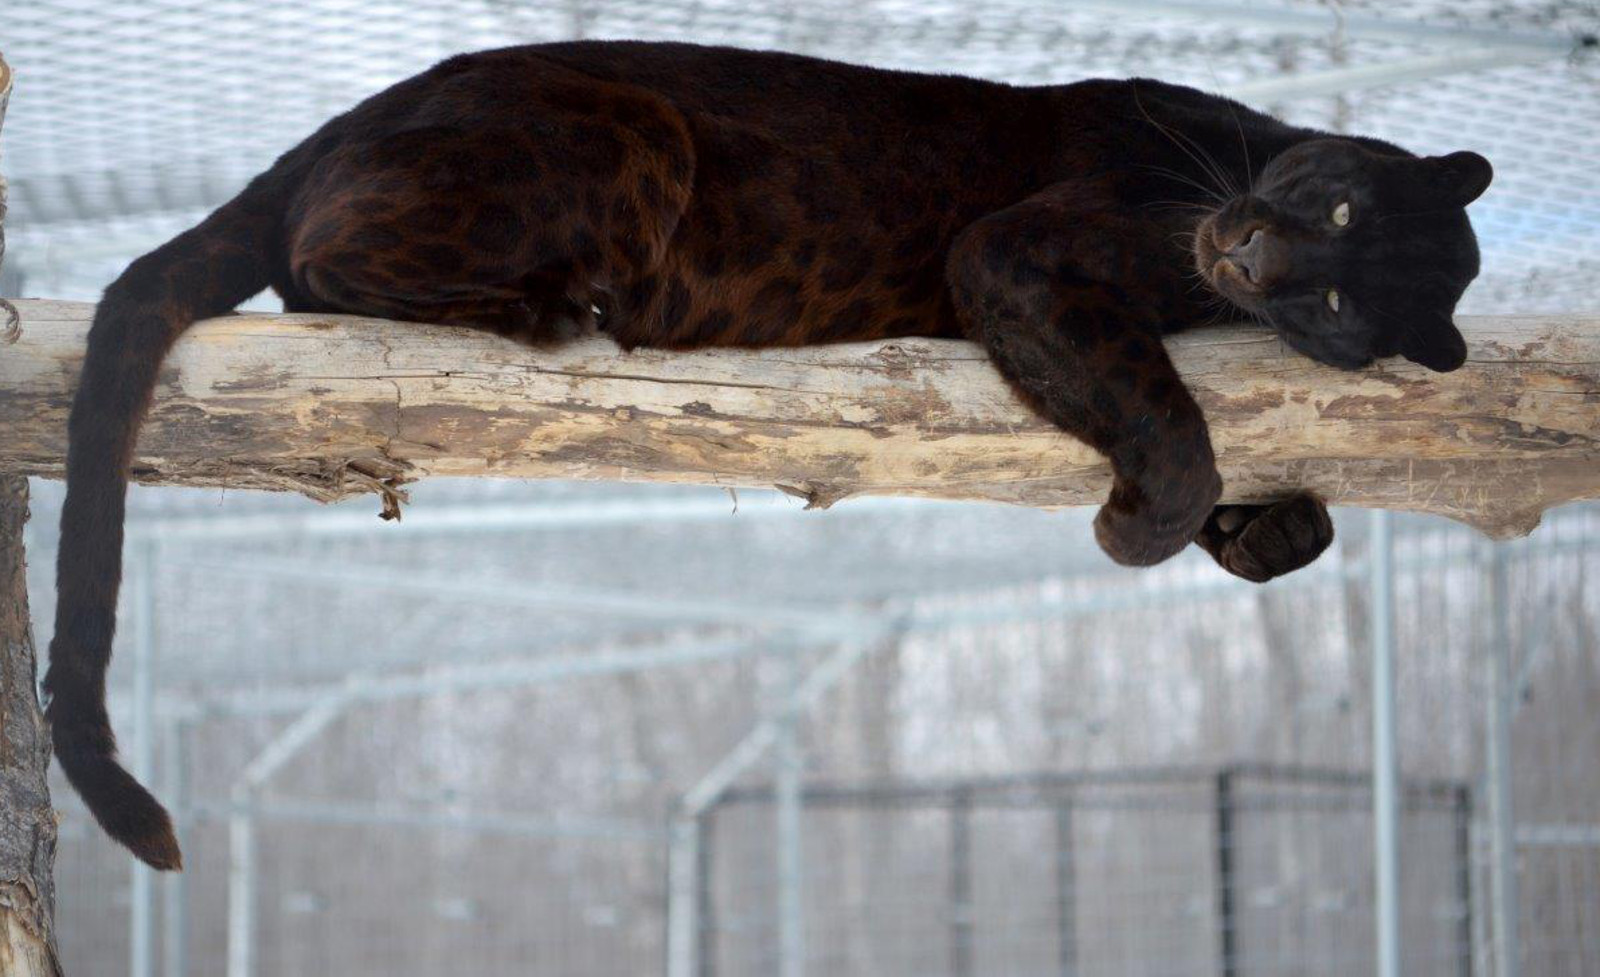 From Failed Zoo to Reigning King of the Perch, Shazam the Leopard Enjoys His Freedom at Wildcat Sanctuary